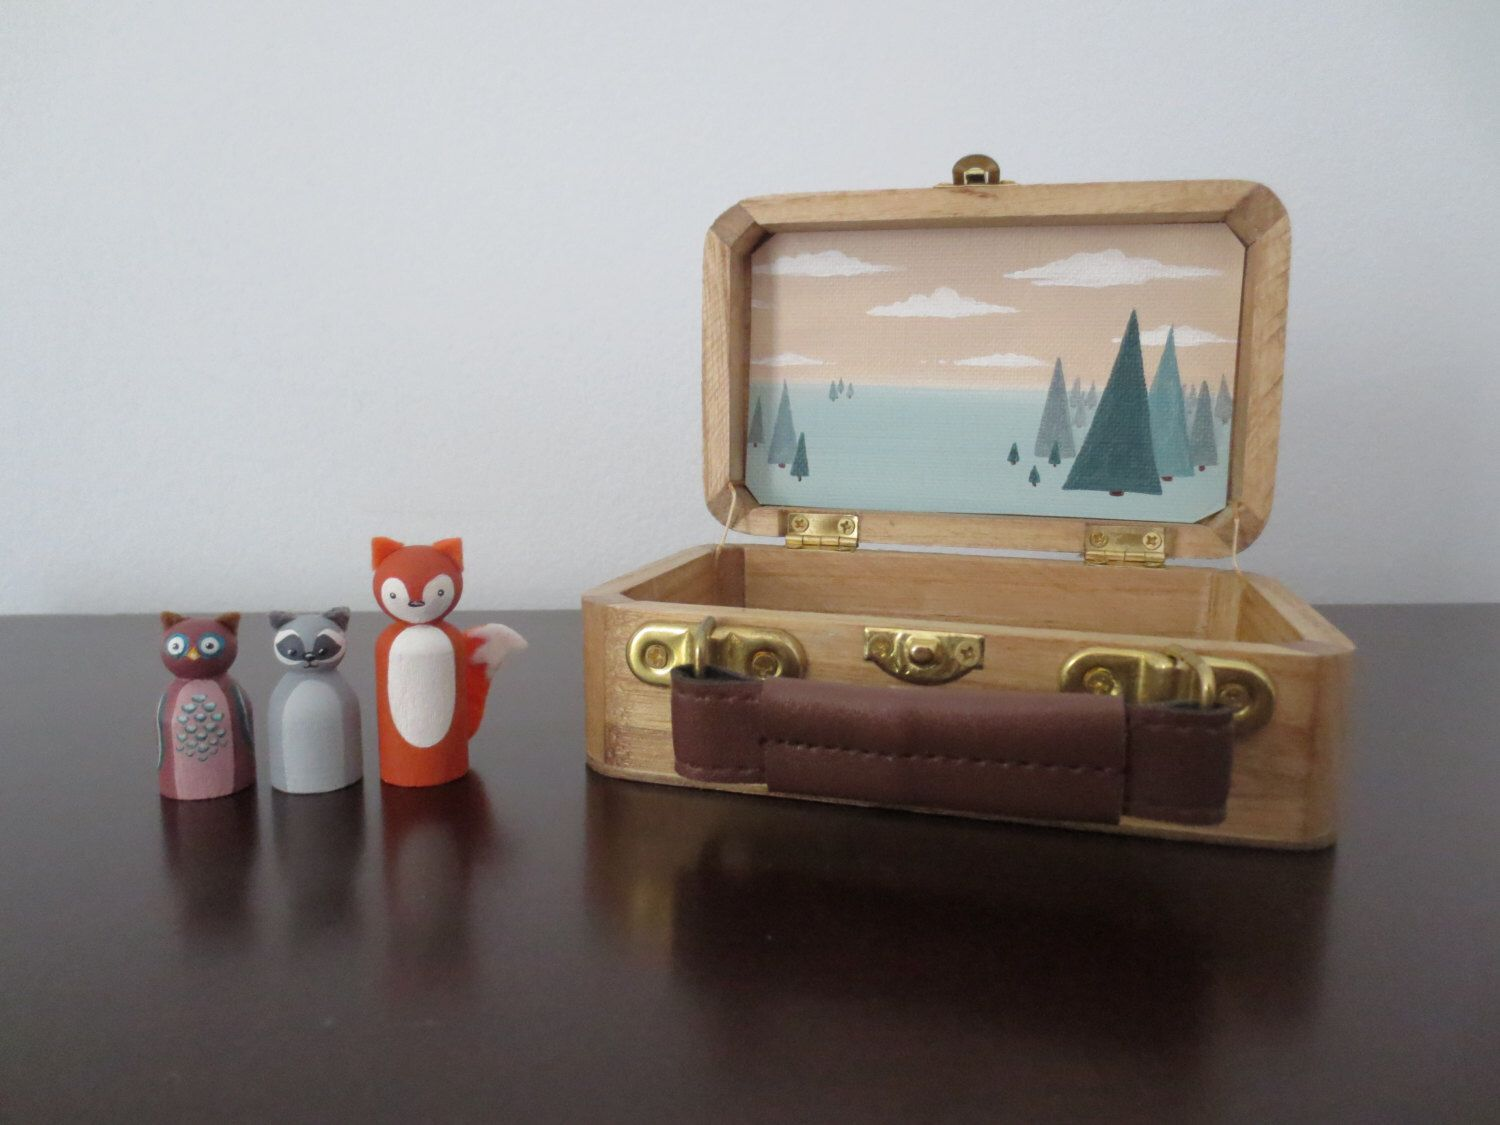 Woodland creatures toy set: fox, raccoon and owl. Gift set